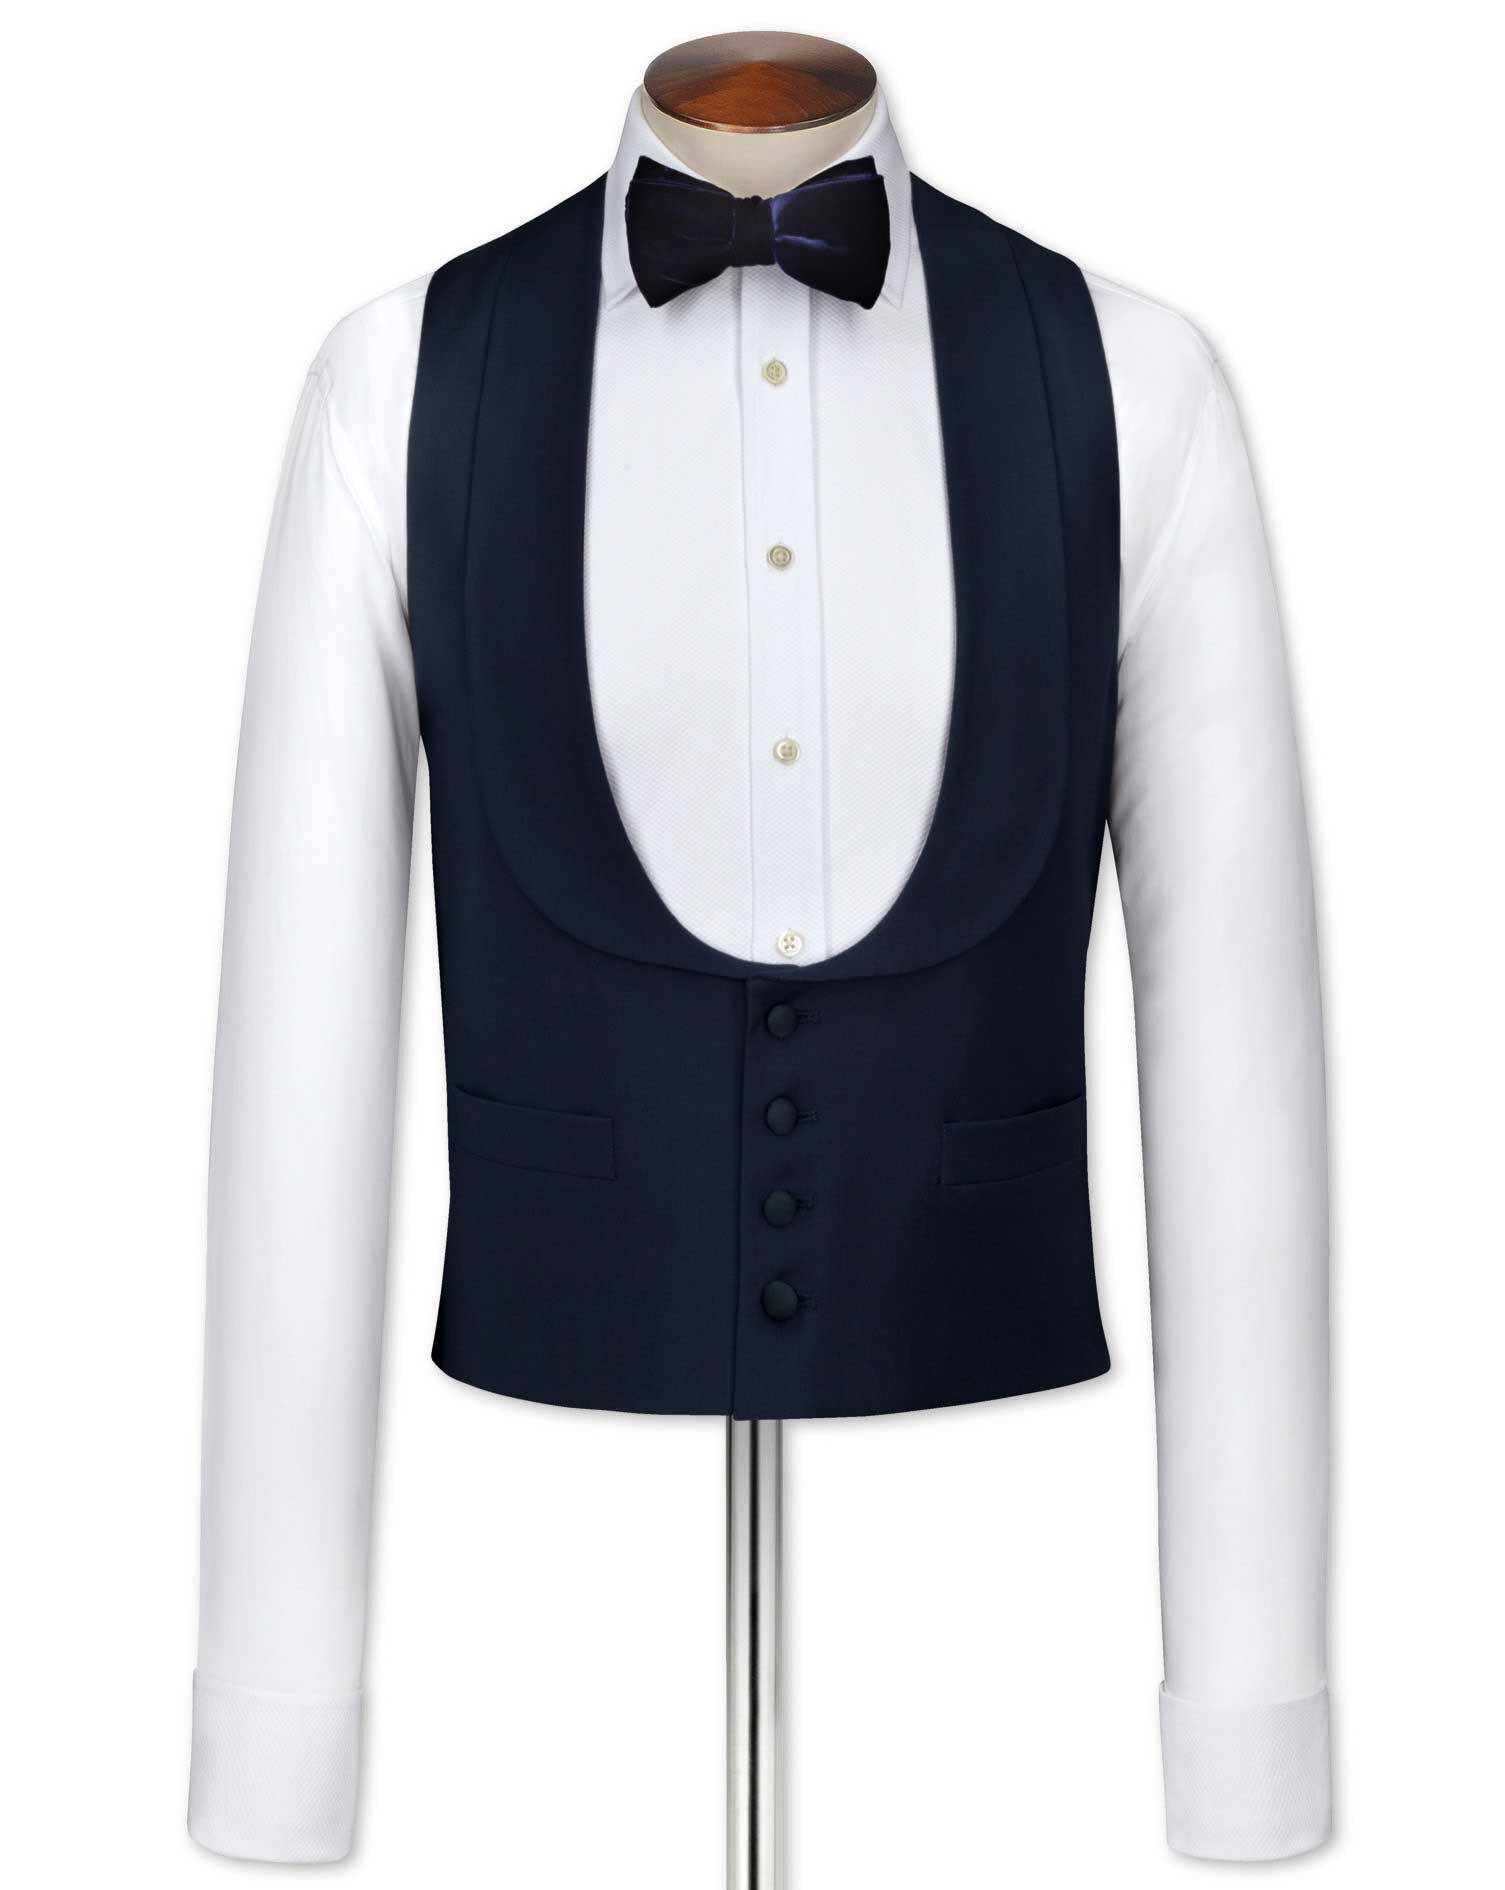 Edwardian Men's Formal Wear Charles Tyrwhitt Navy tuxedo waistcoat £70.00 AT vintagedancer.com